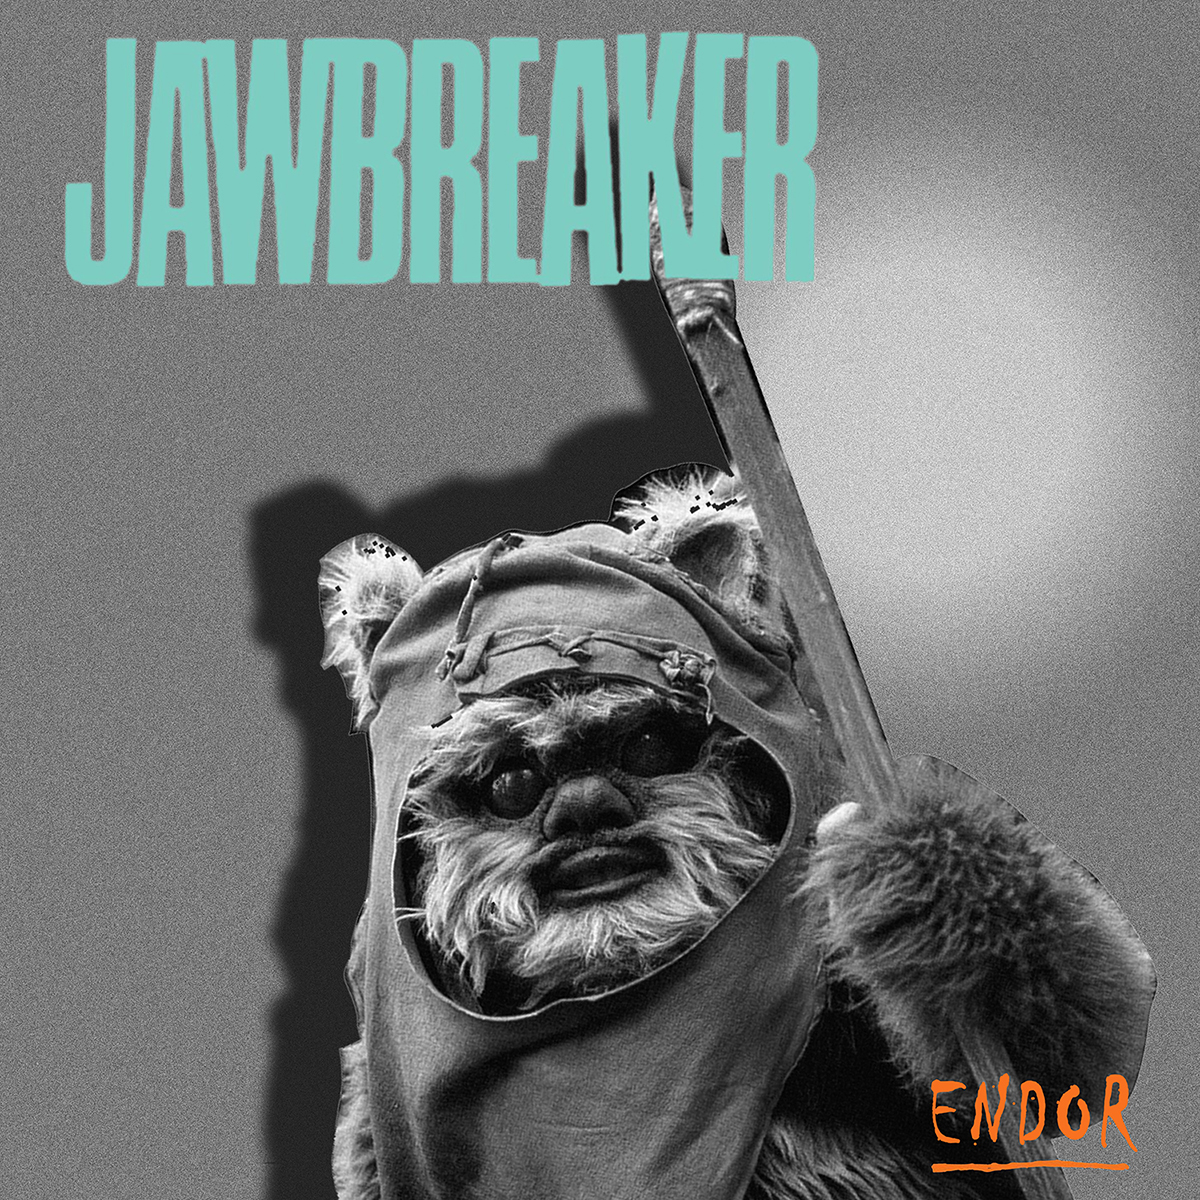 2017 May The 4th Be With You: May The Fourth Be With Jawbreaker